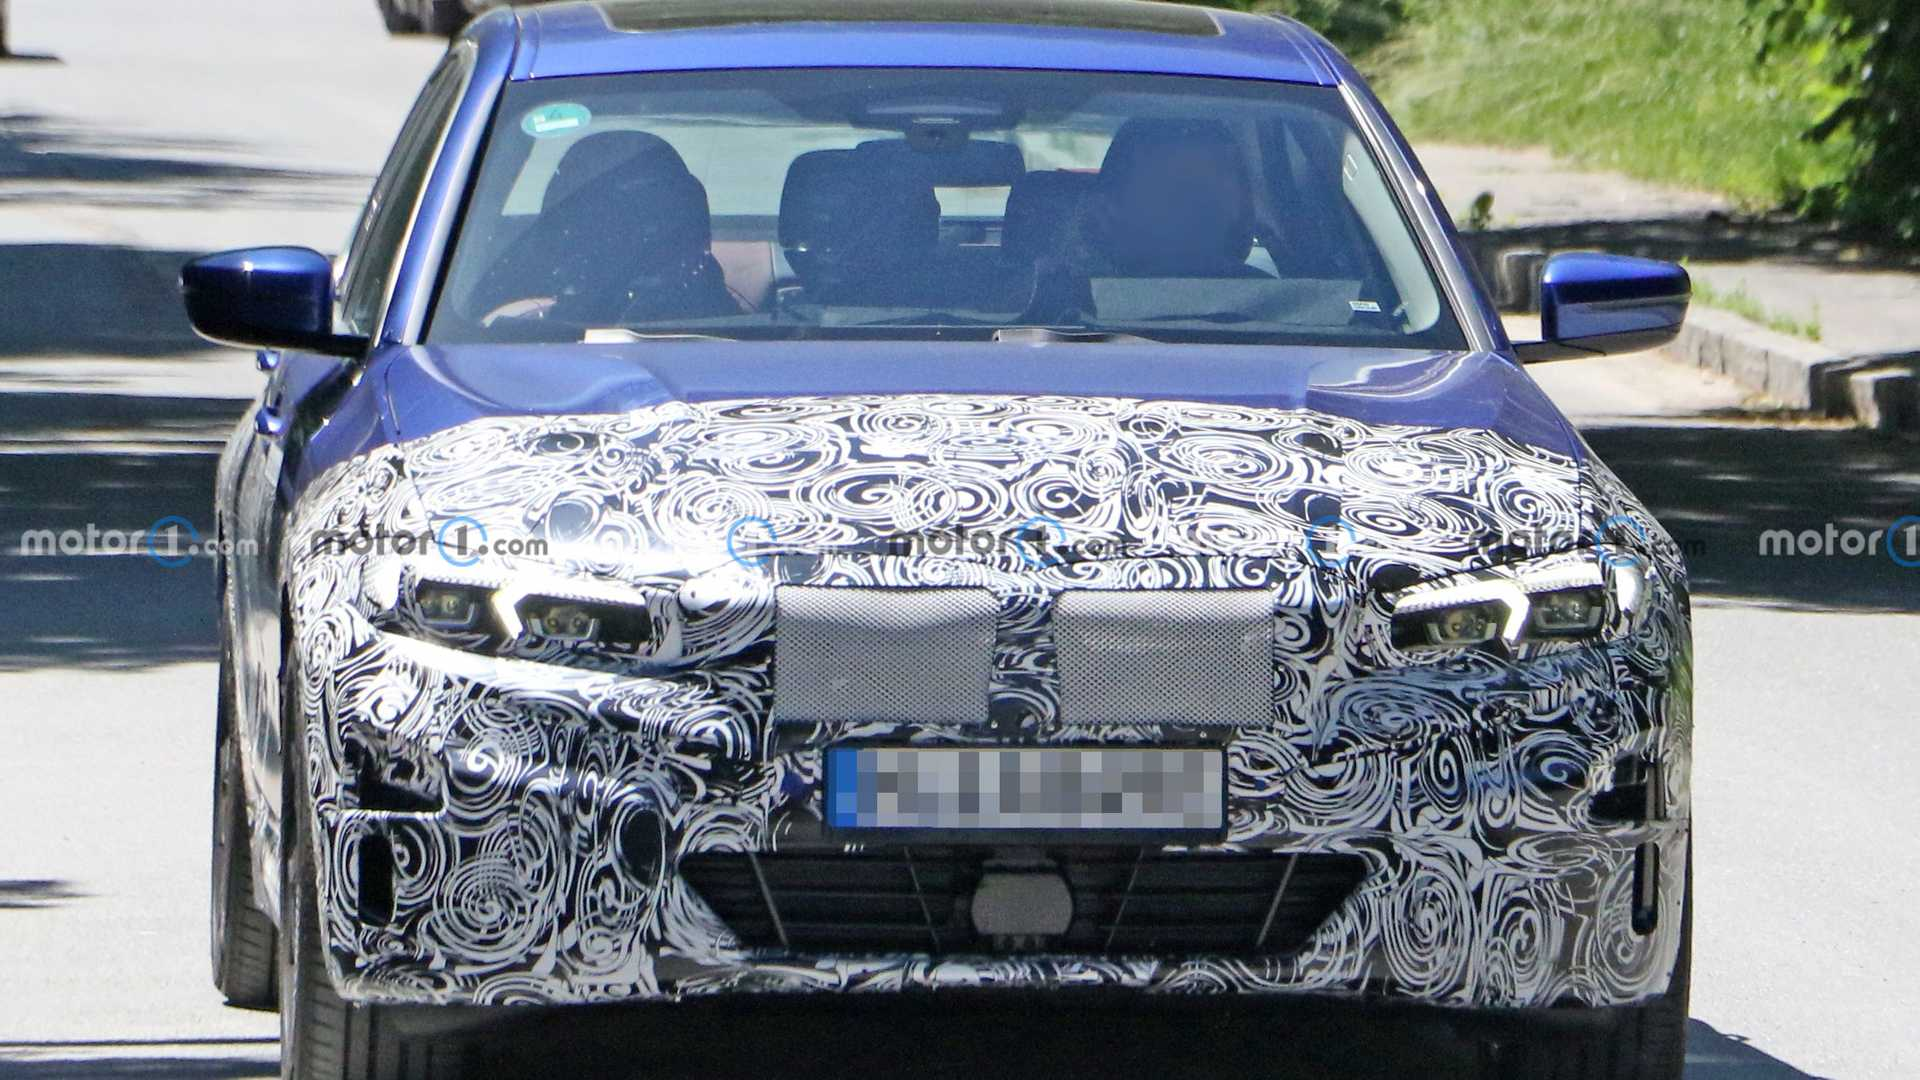 BMW 3 Series Electric new spy photo (front)